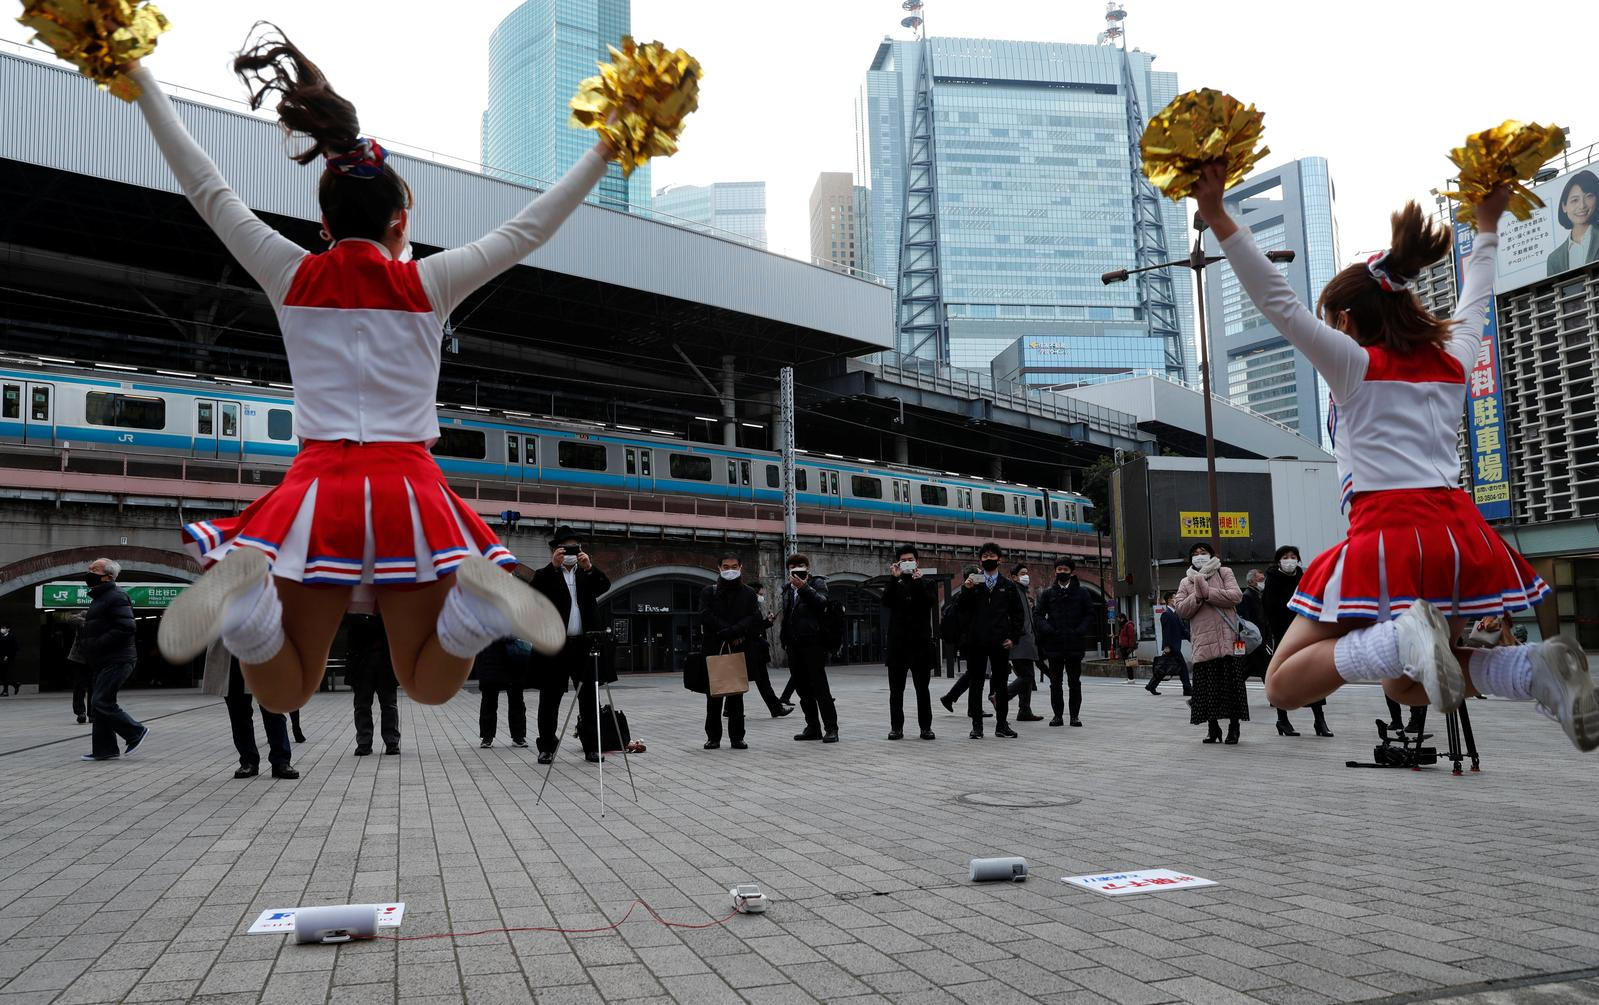 Cheerleaders wearing protective face shields, amid the coronavirus disease (COVID-19) outbreak, dance to cheer people up in front of Shimbashi Station during the commuting hour in Tokyo, Japan, January 7, 2021. Photo: Reuters